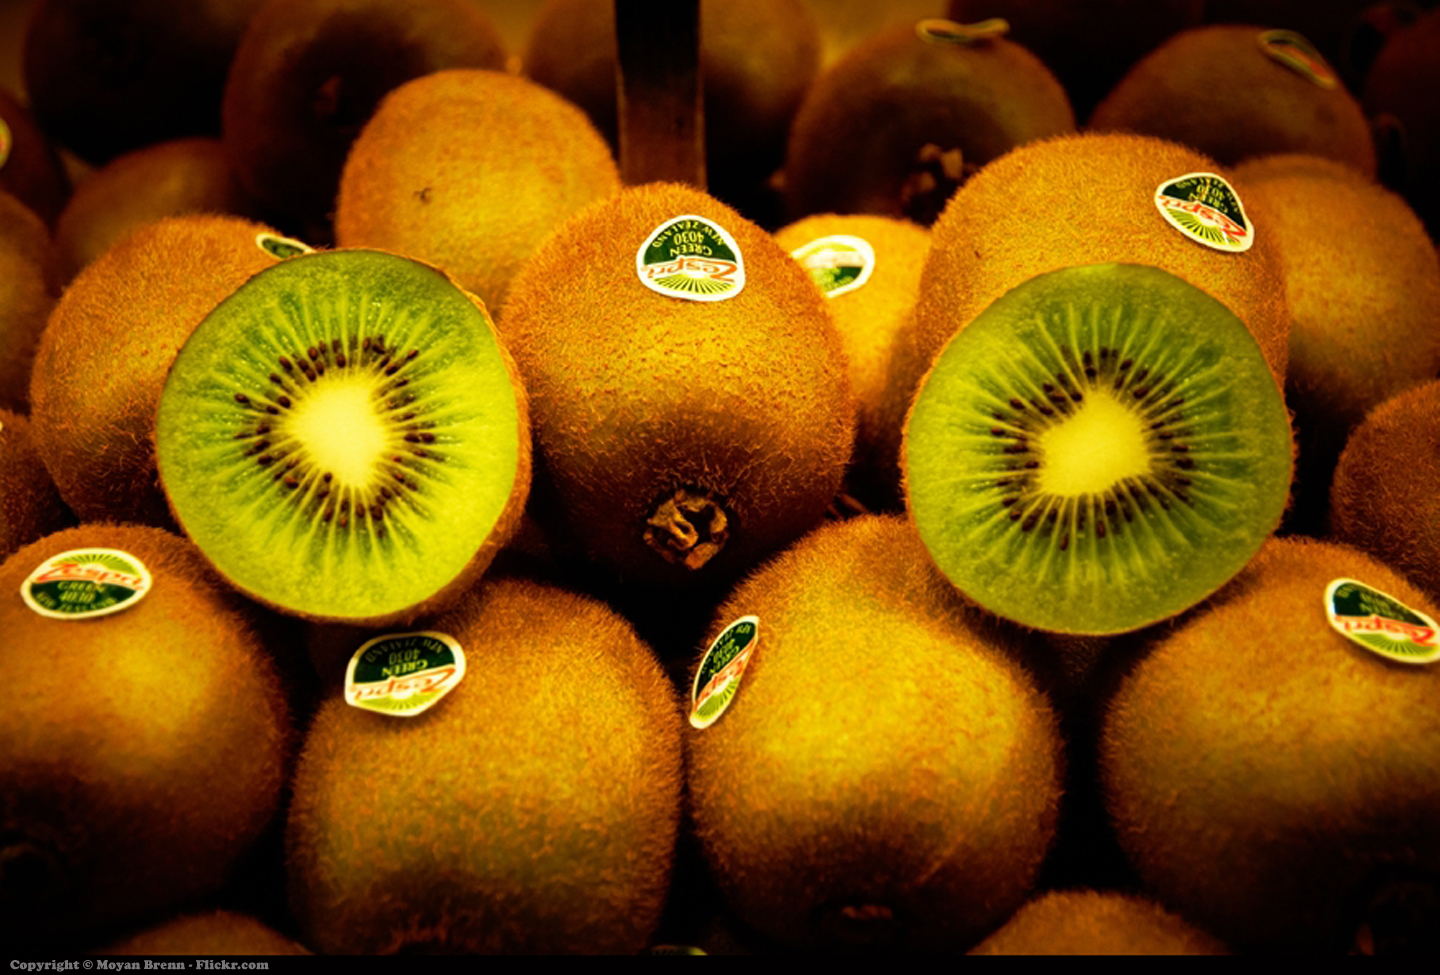 Kiwi fruit | Flickr - Photo